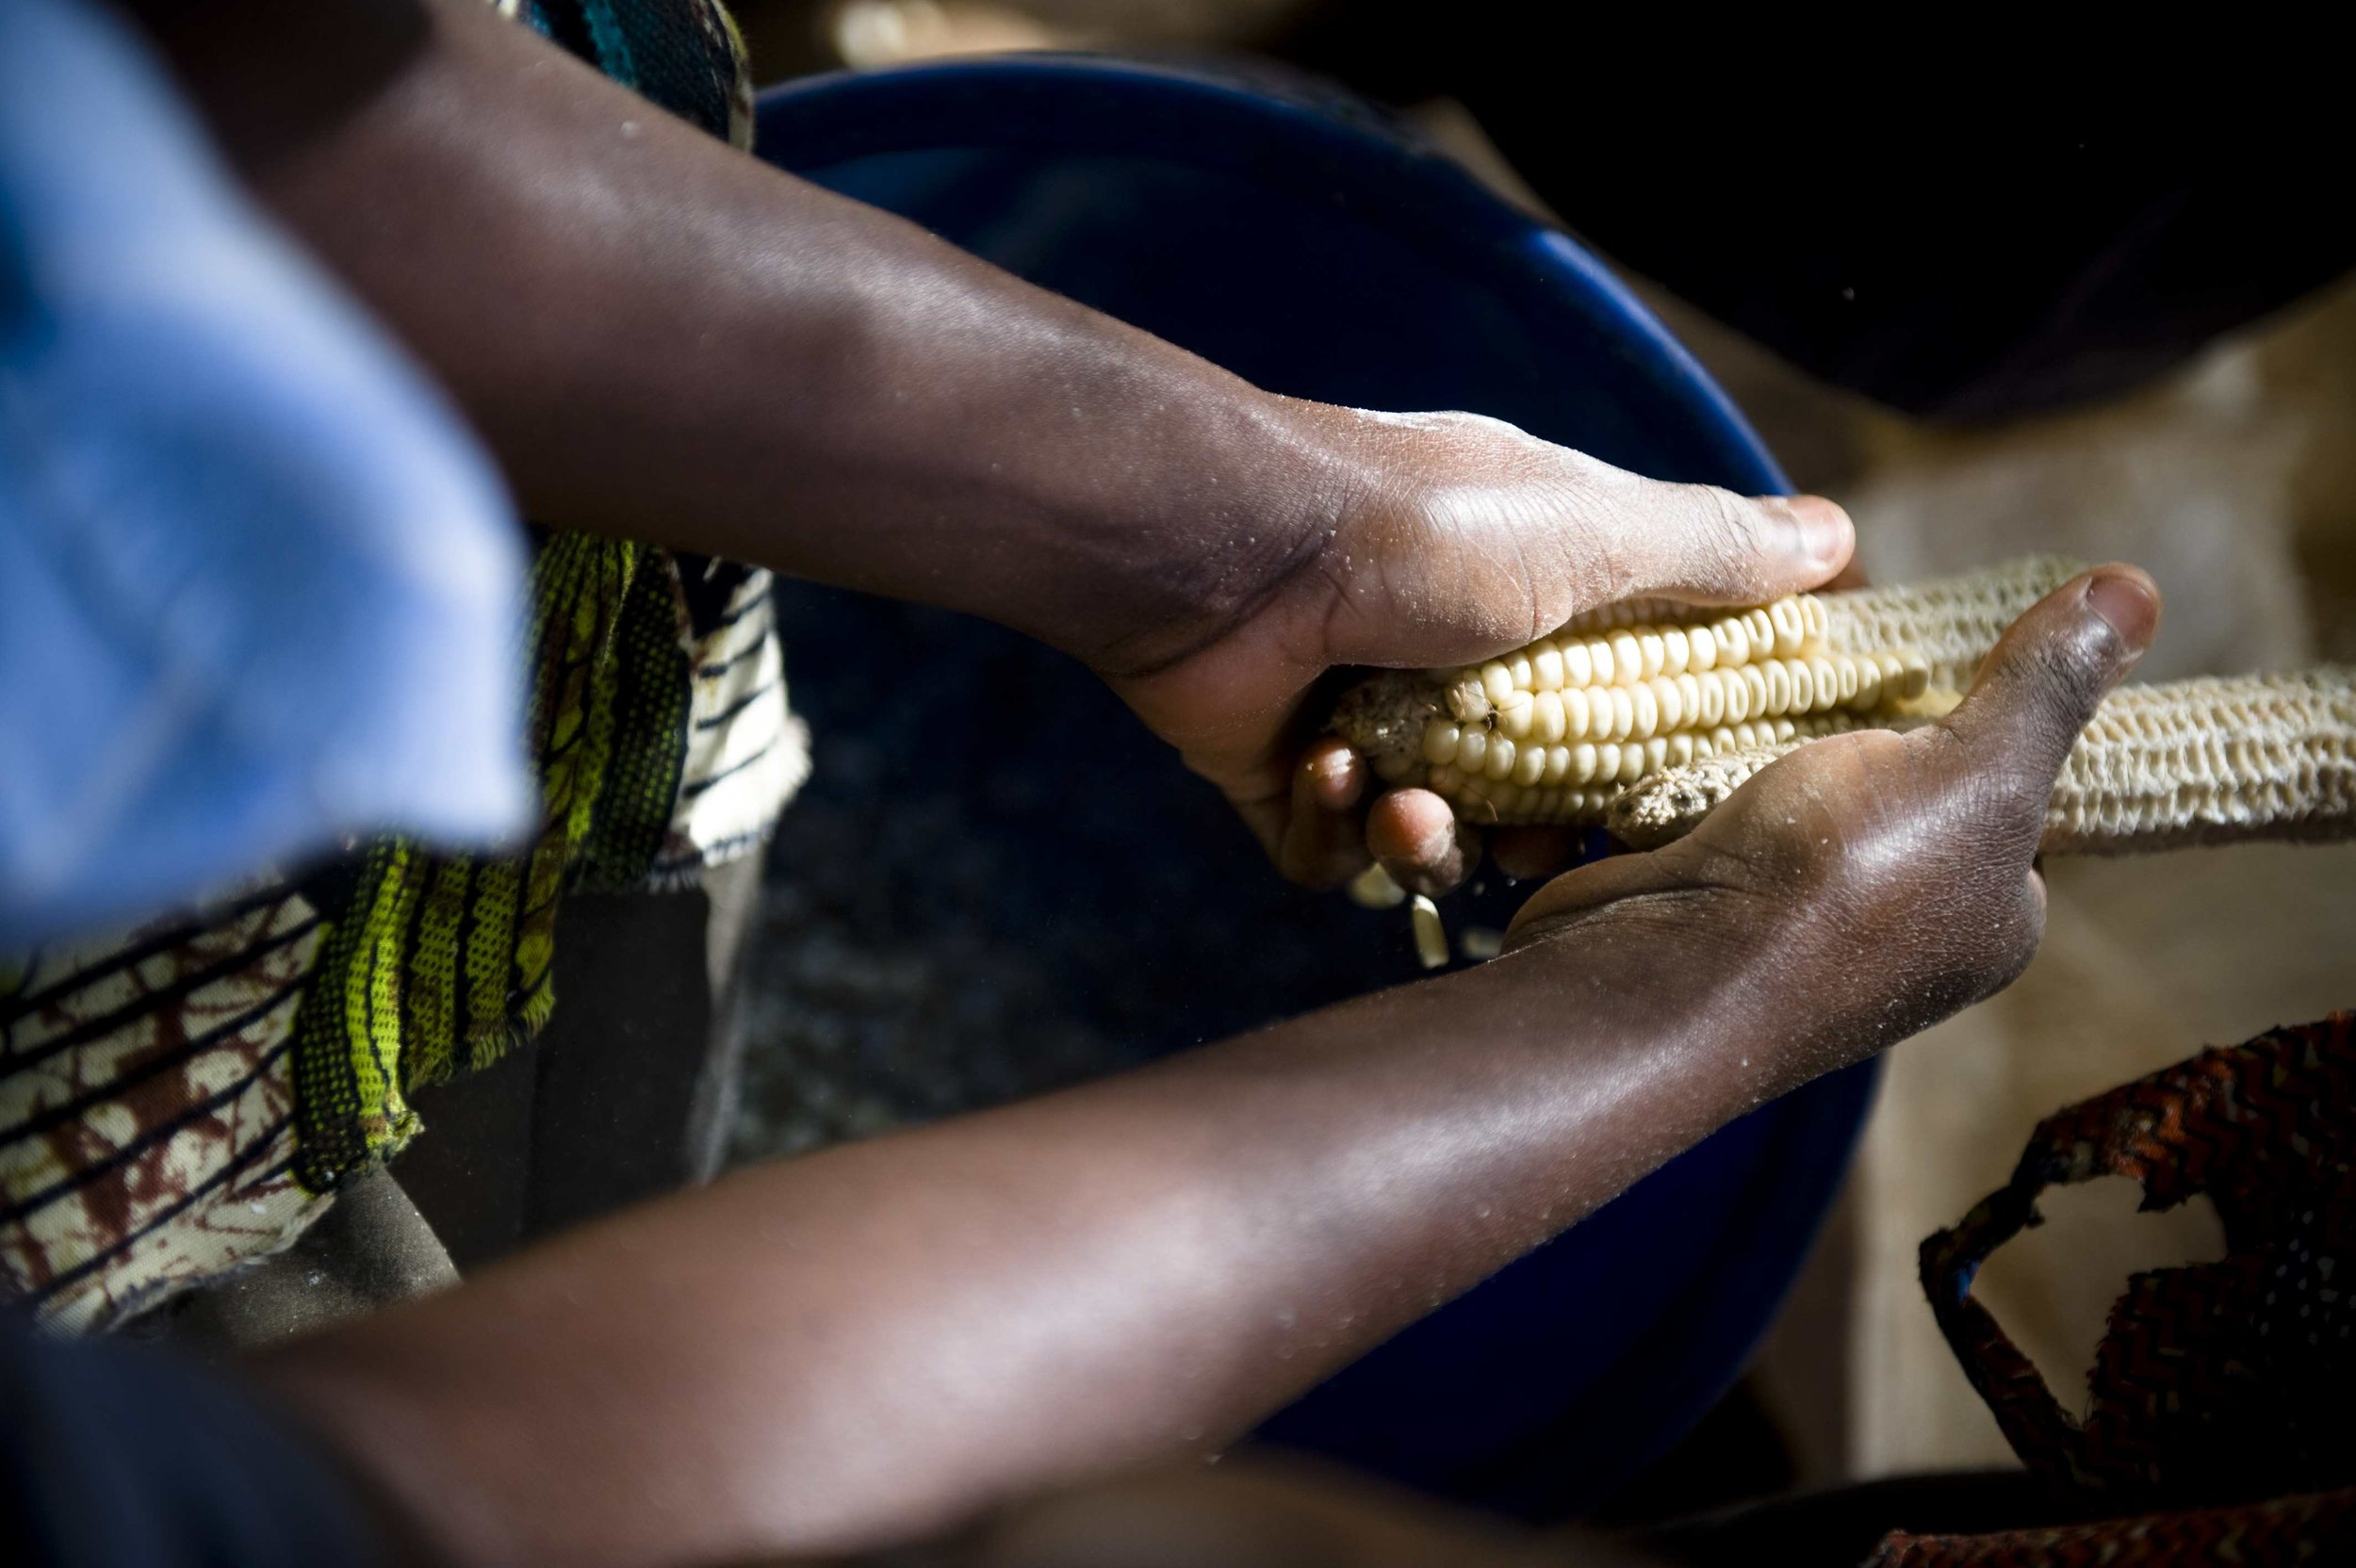 Two hands shuck kernels from a cob of maize